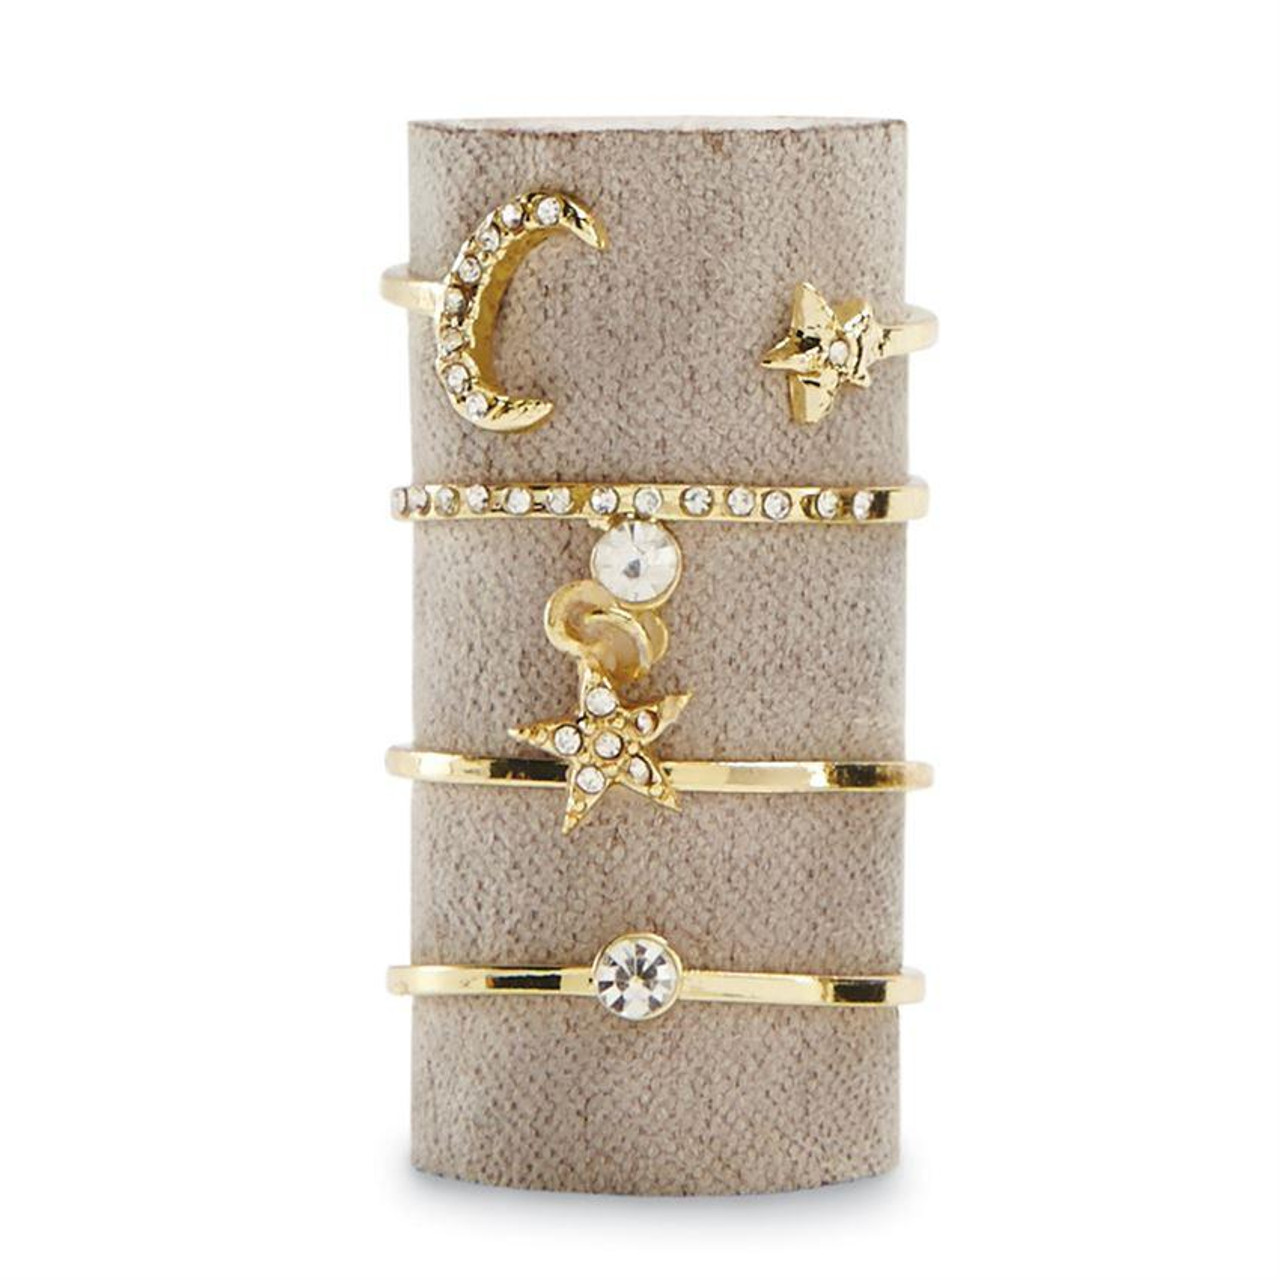 Set includes four different adjustable gold metal rings with pave accents. Ring sets arrive stacked on velvet in corked glass vial.